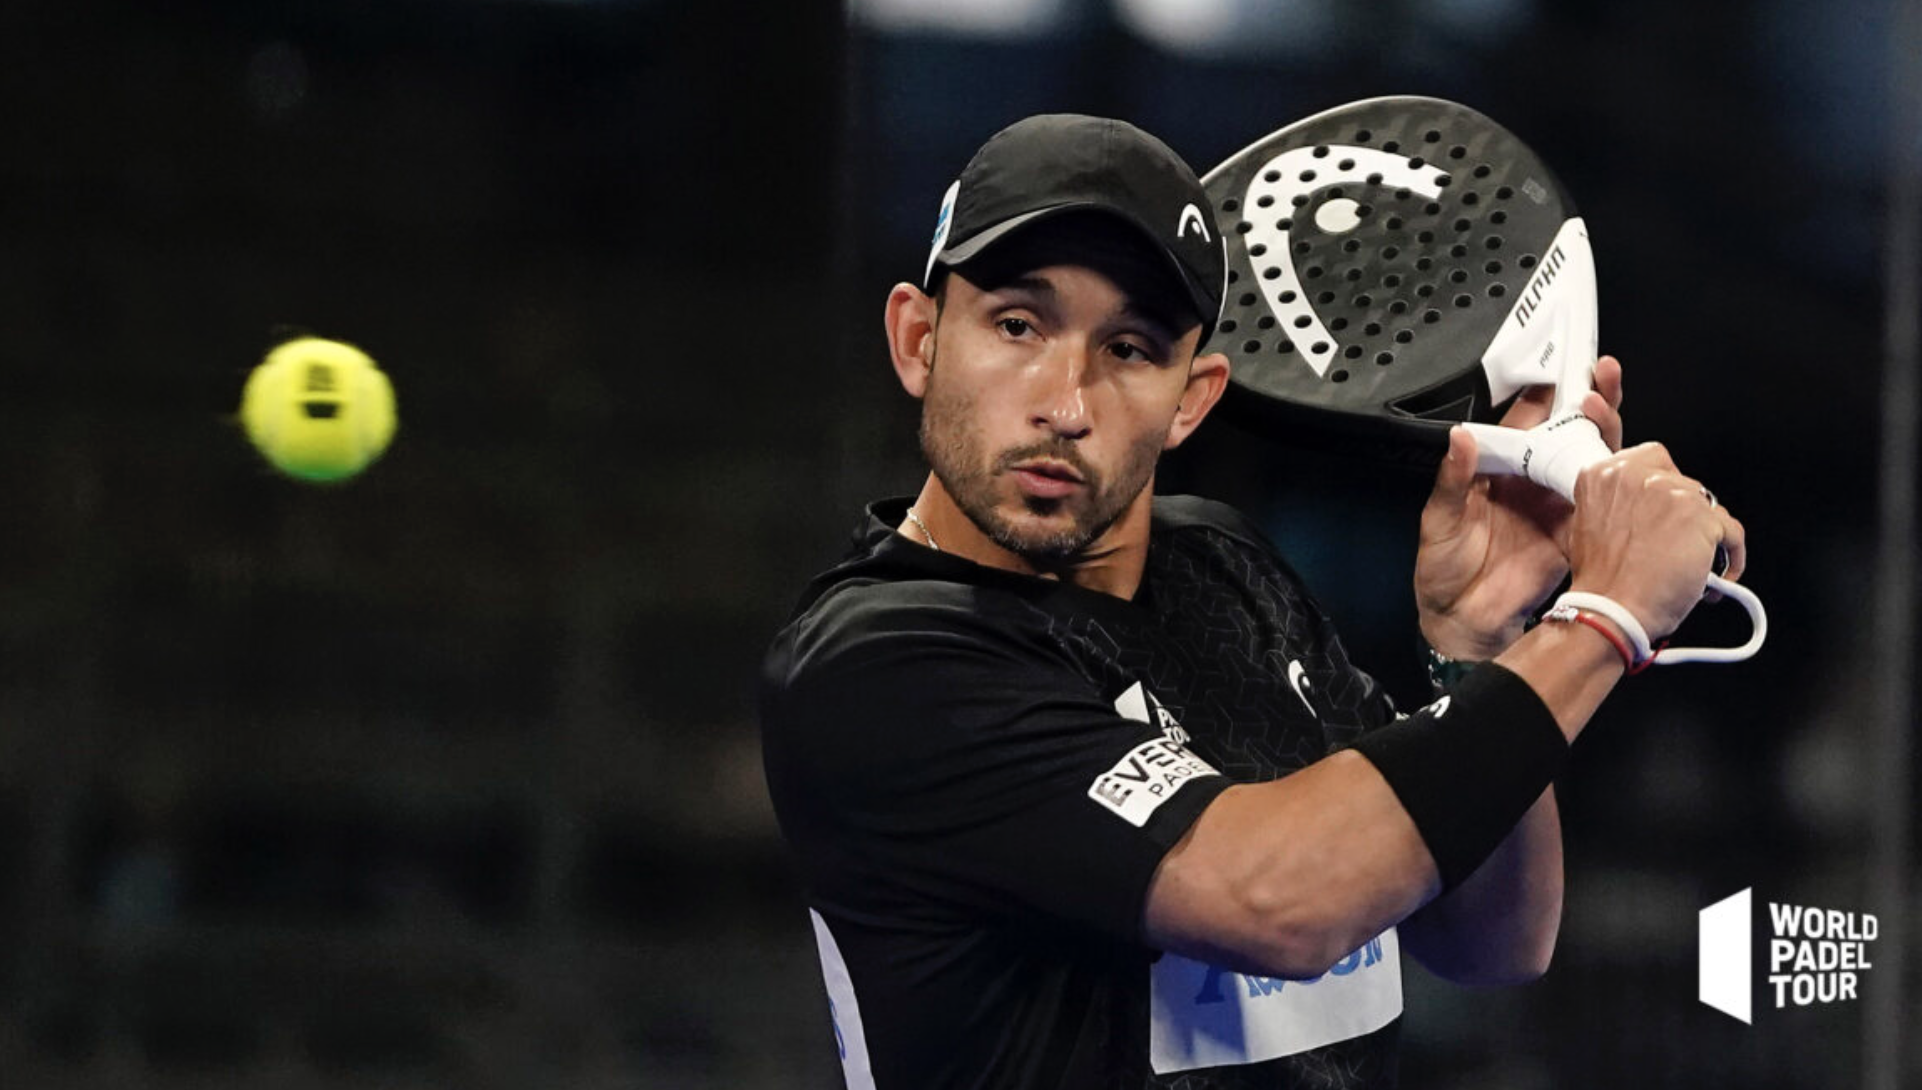 Mental imagery to progress in padel